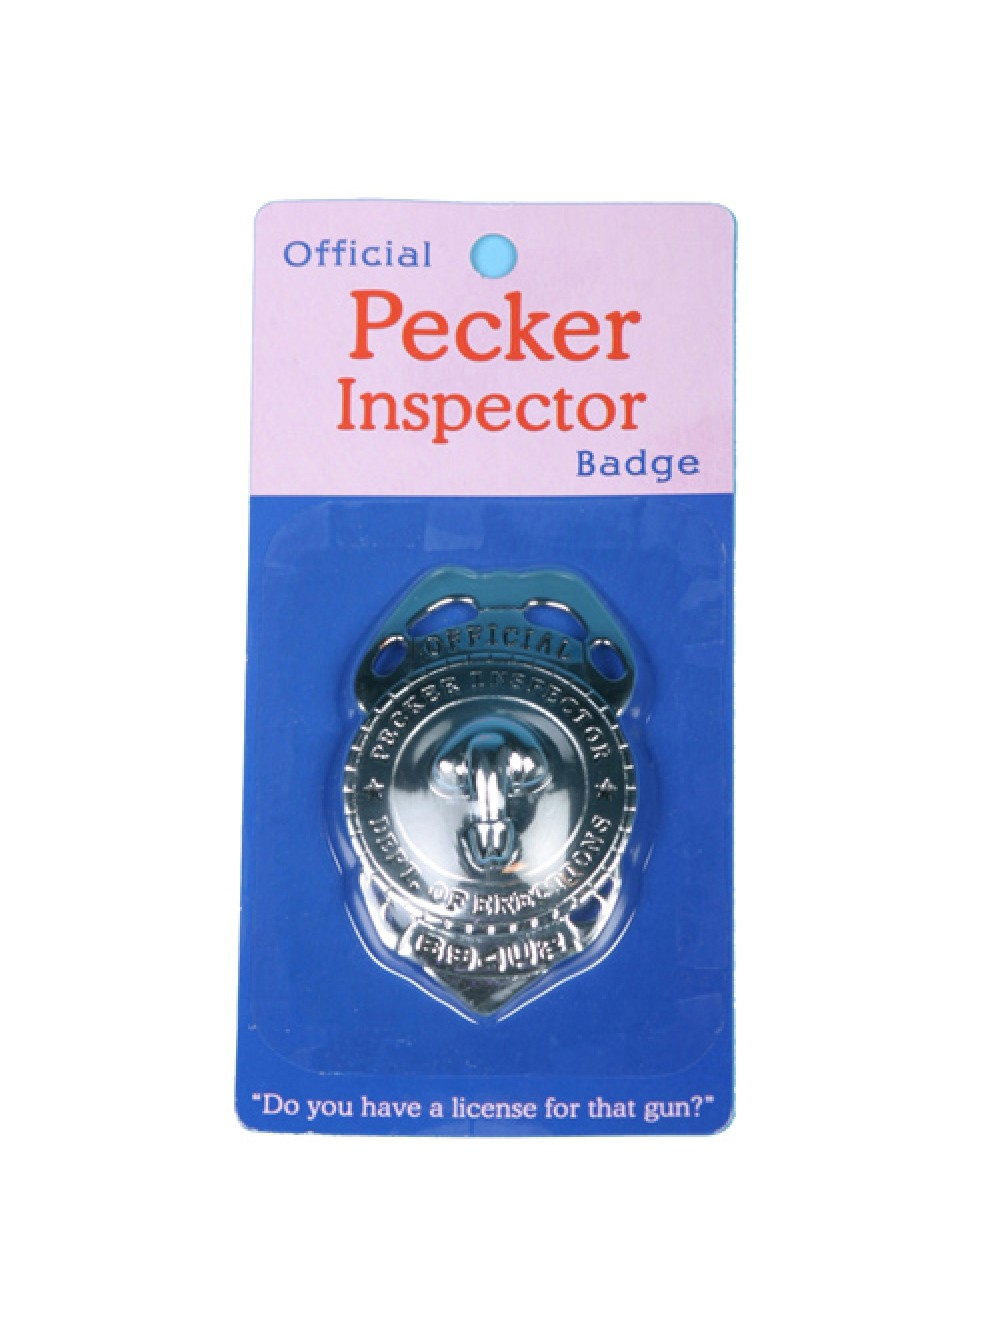 Official Pecker Inspector Badge 825156102565